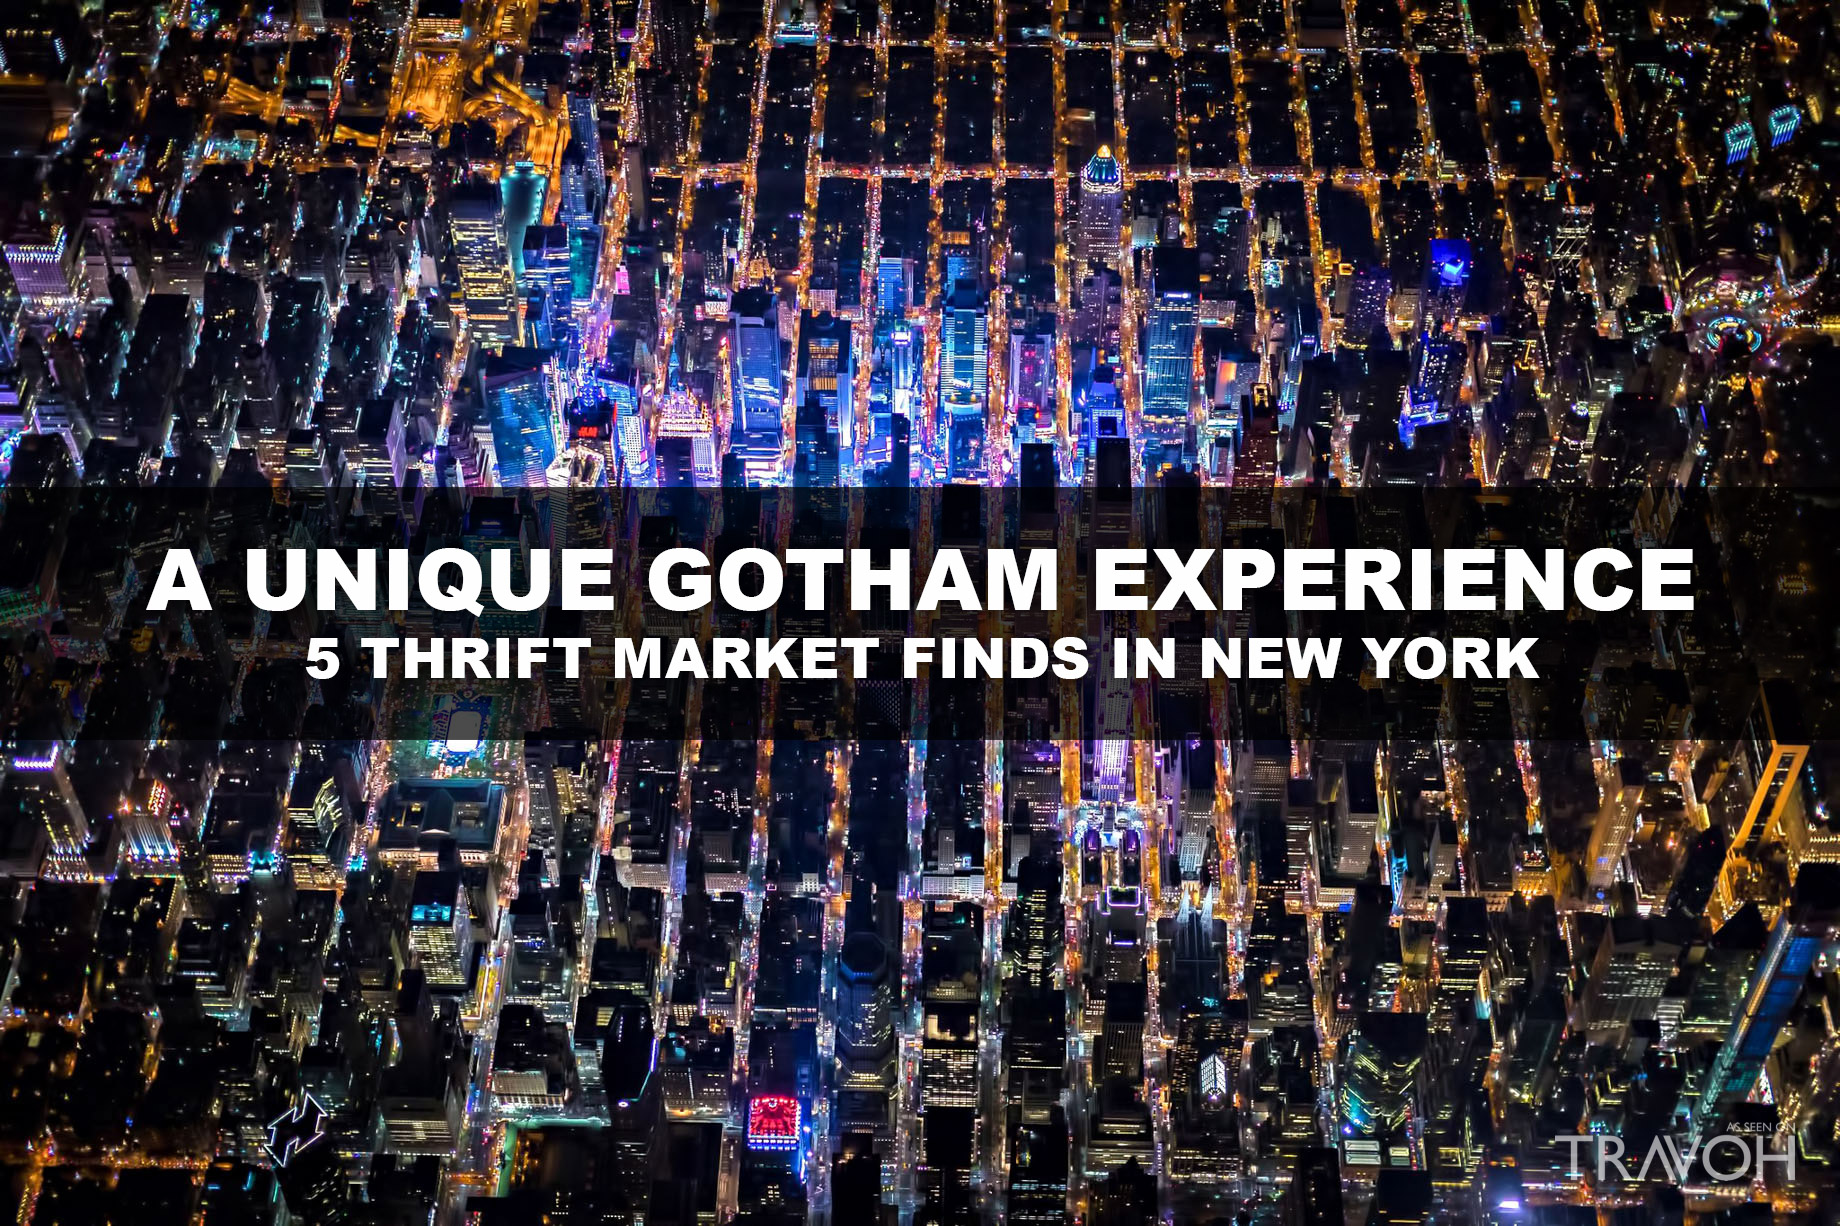 A Unique Gotham Experience - 5 Thrift Market Finds in New York